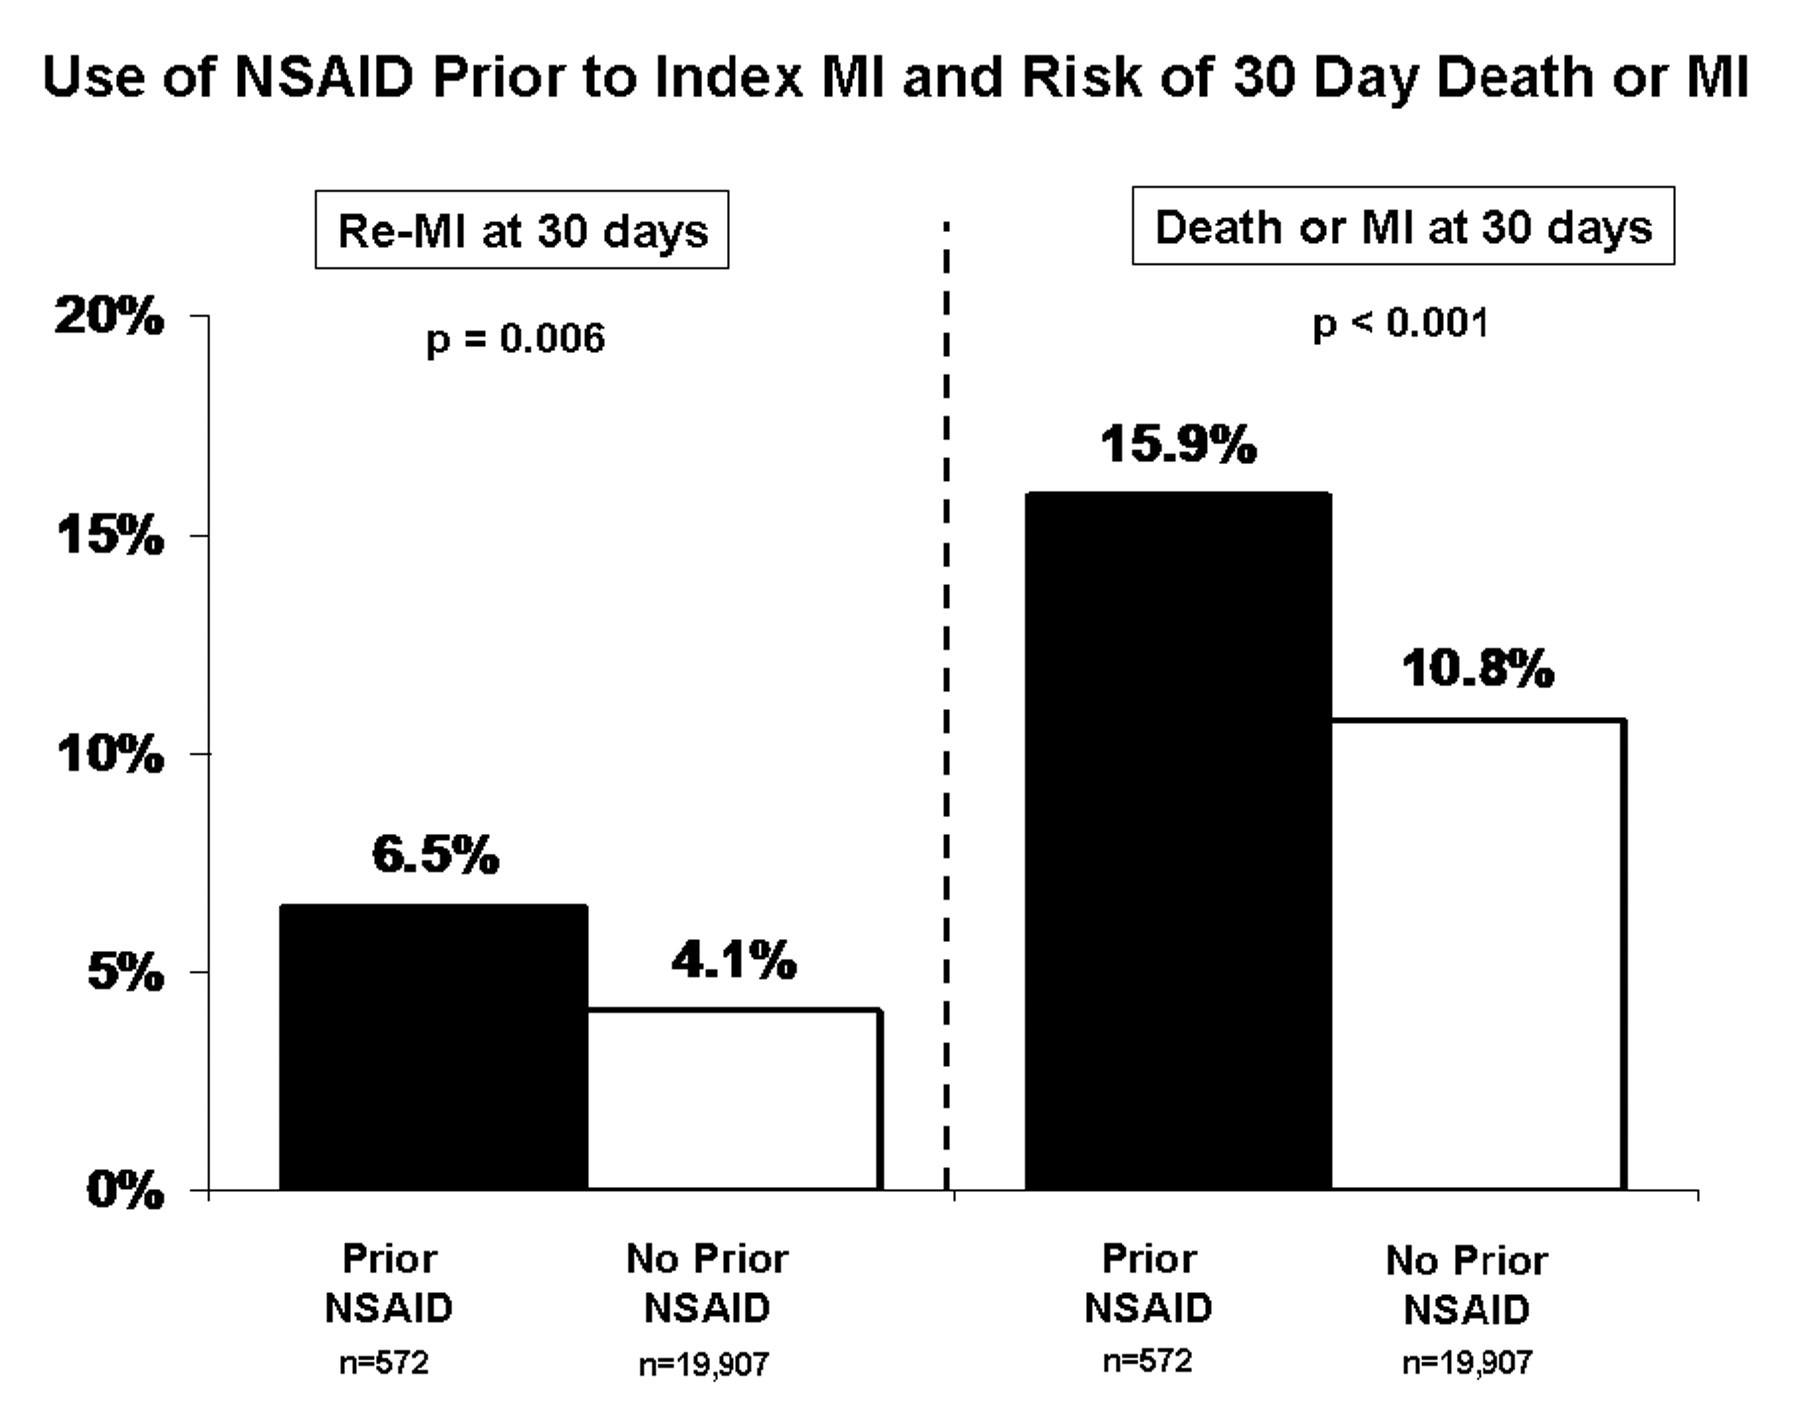 nephrotoxicity / fluid electrolyte imbalances / hypertension associated  with nsaid use, although these data are hypothesis generating and  exploratory